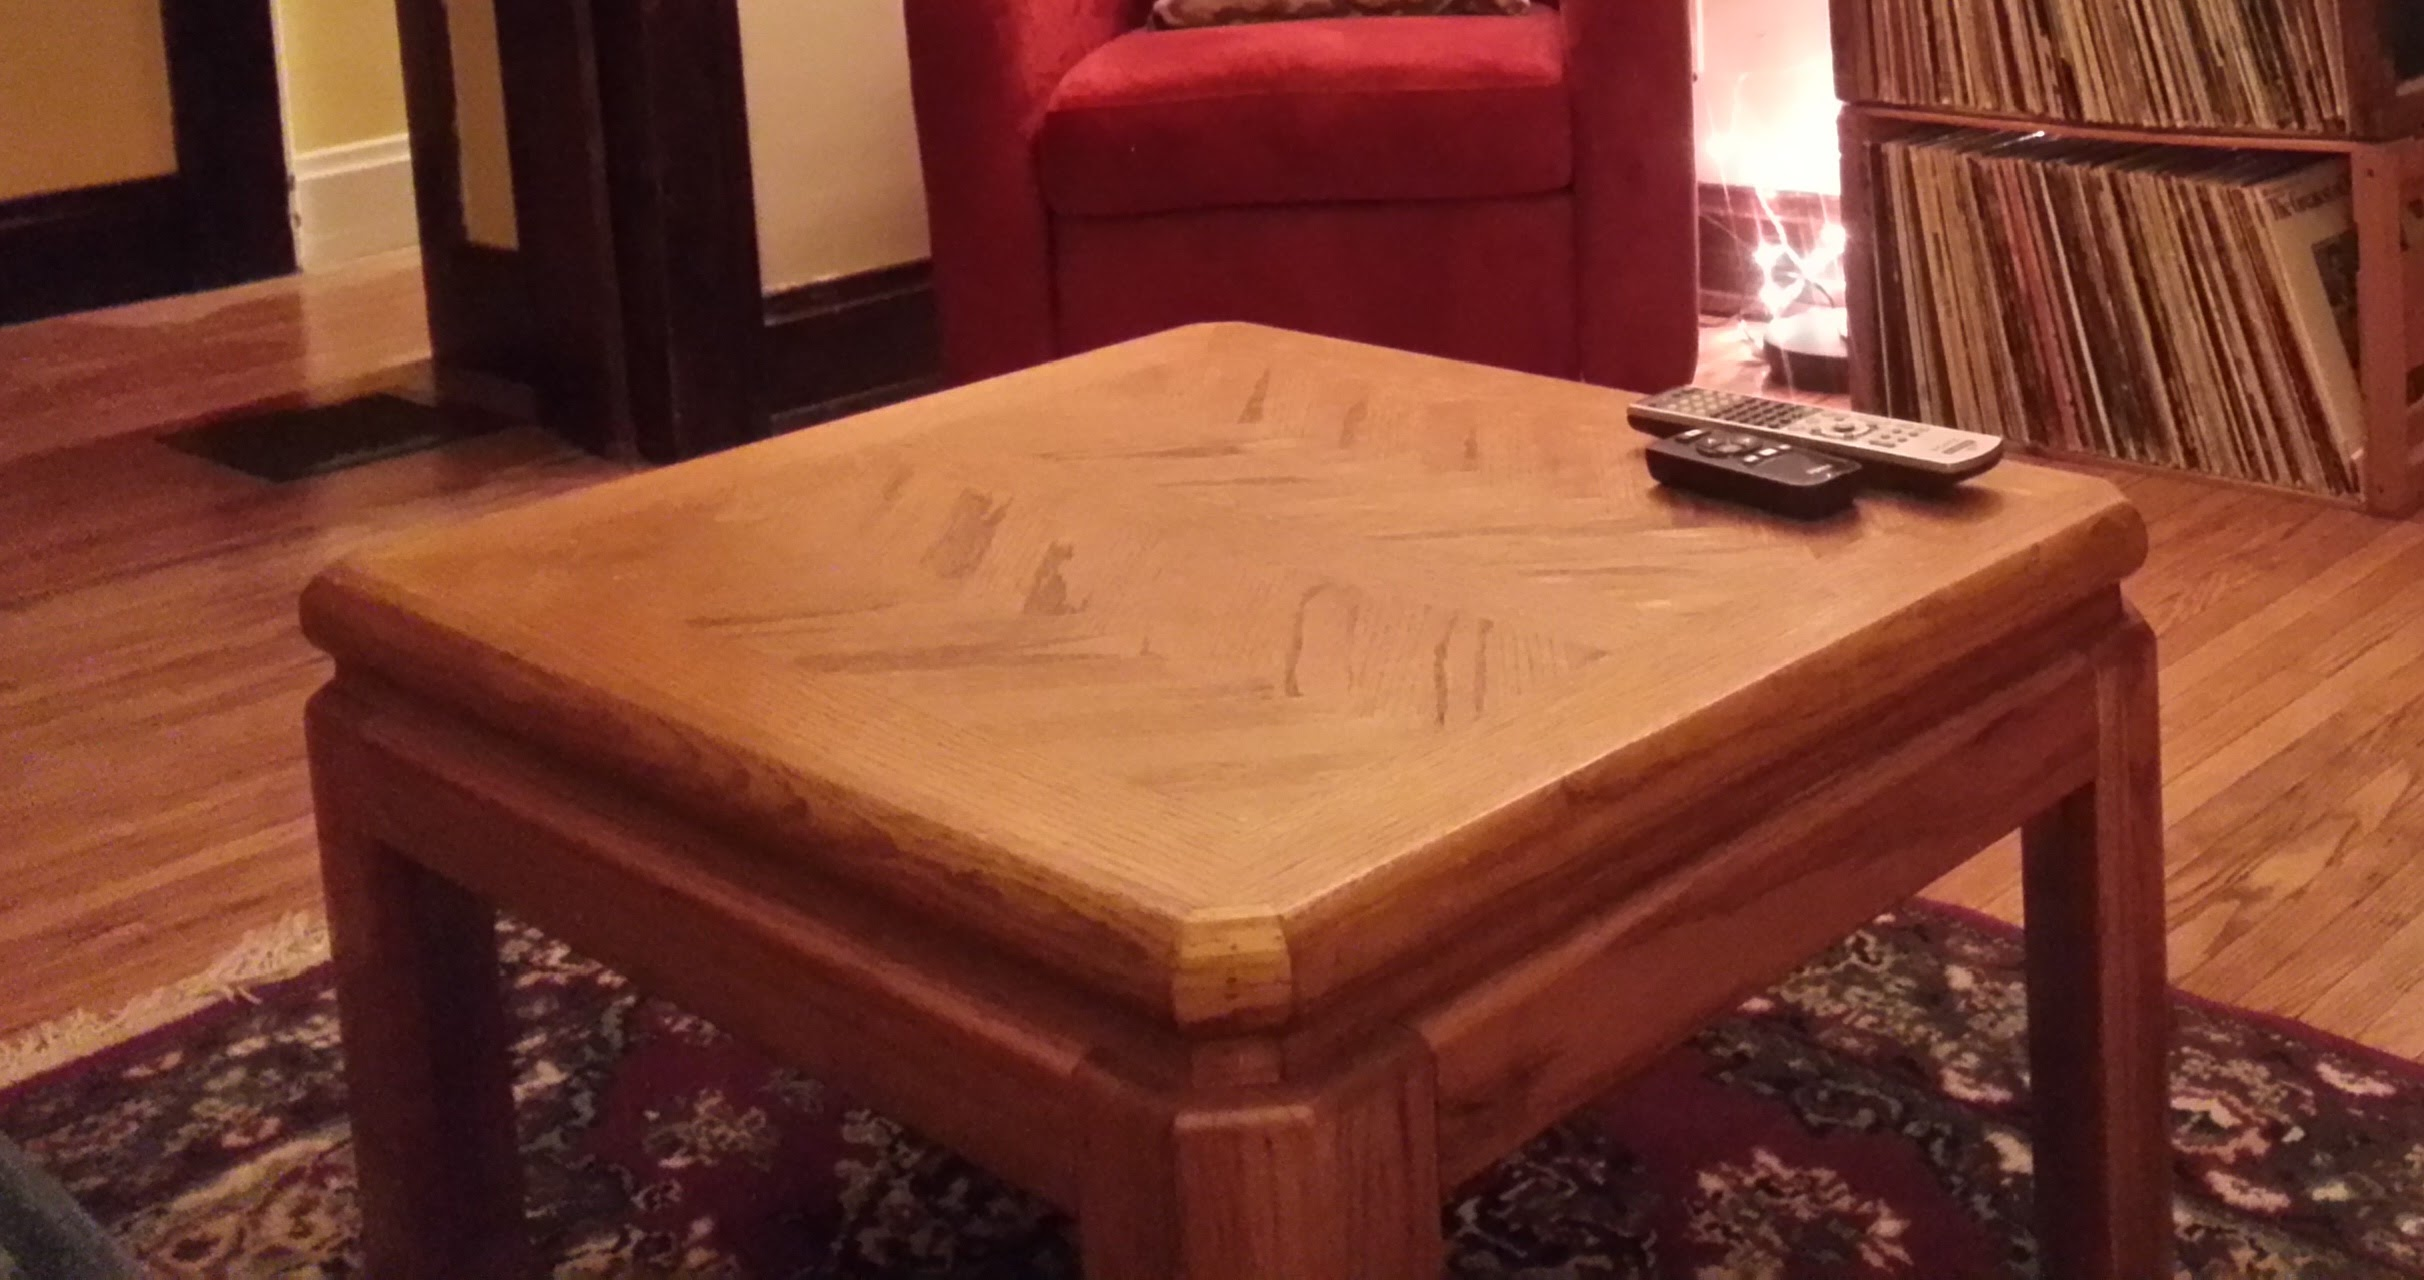 The old coffee table. RIP.